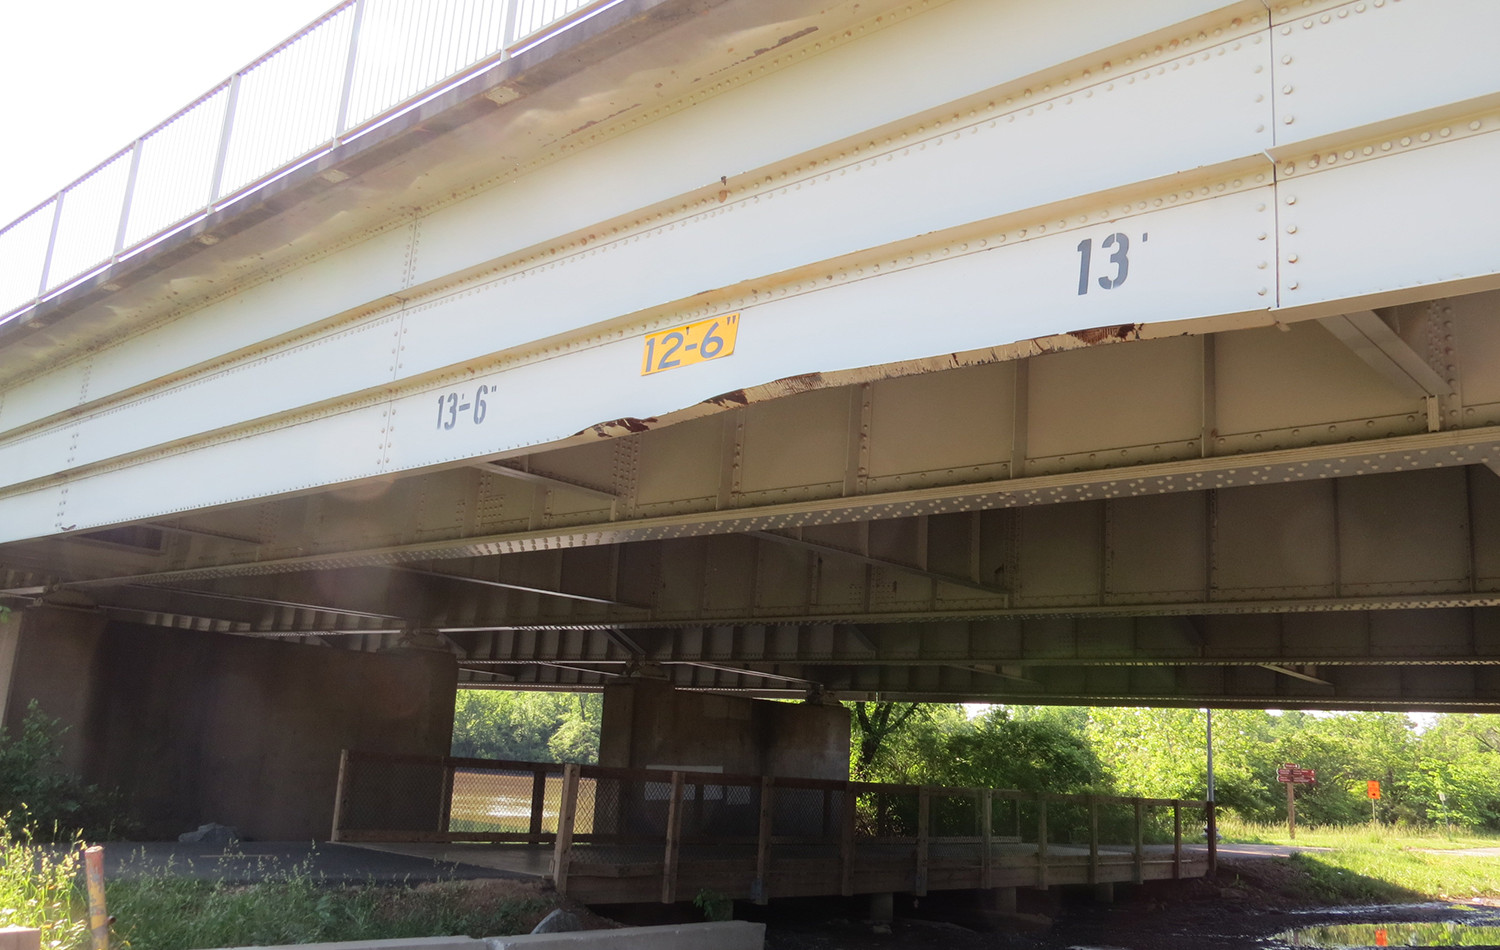 Span 1 North Side Girder Impact Damage